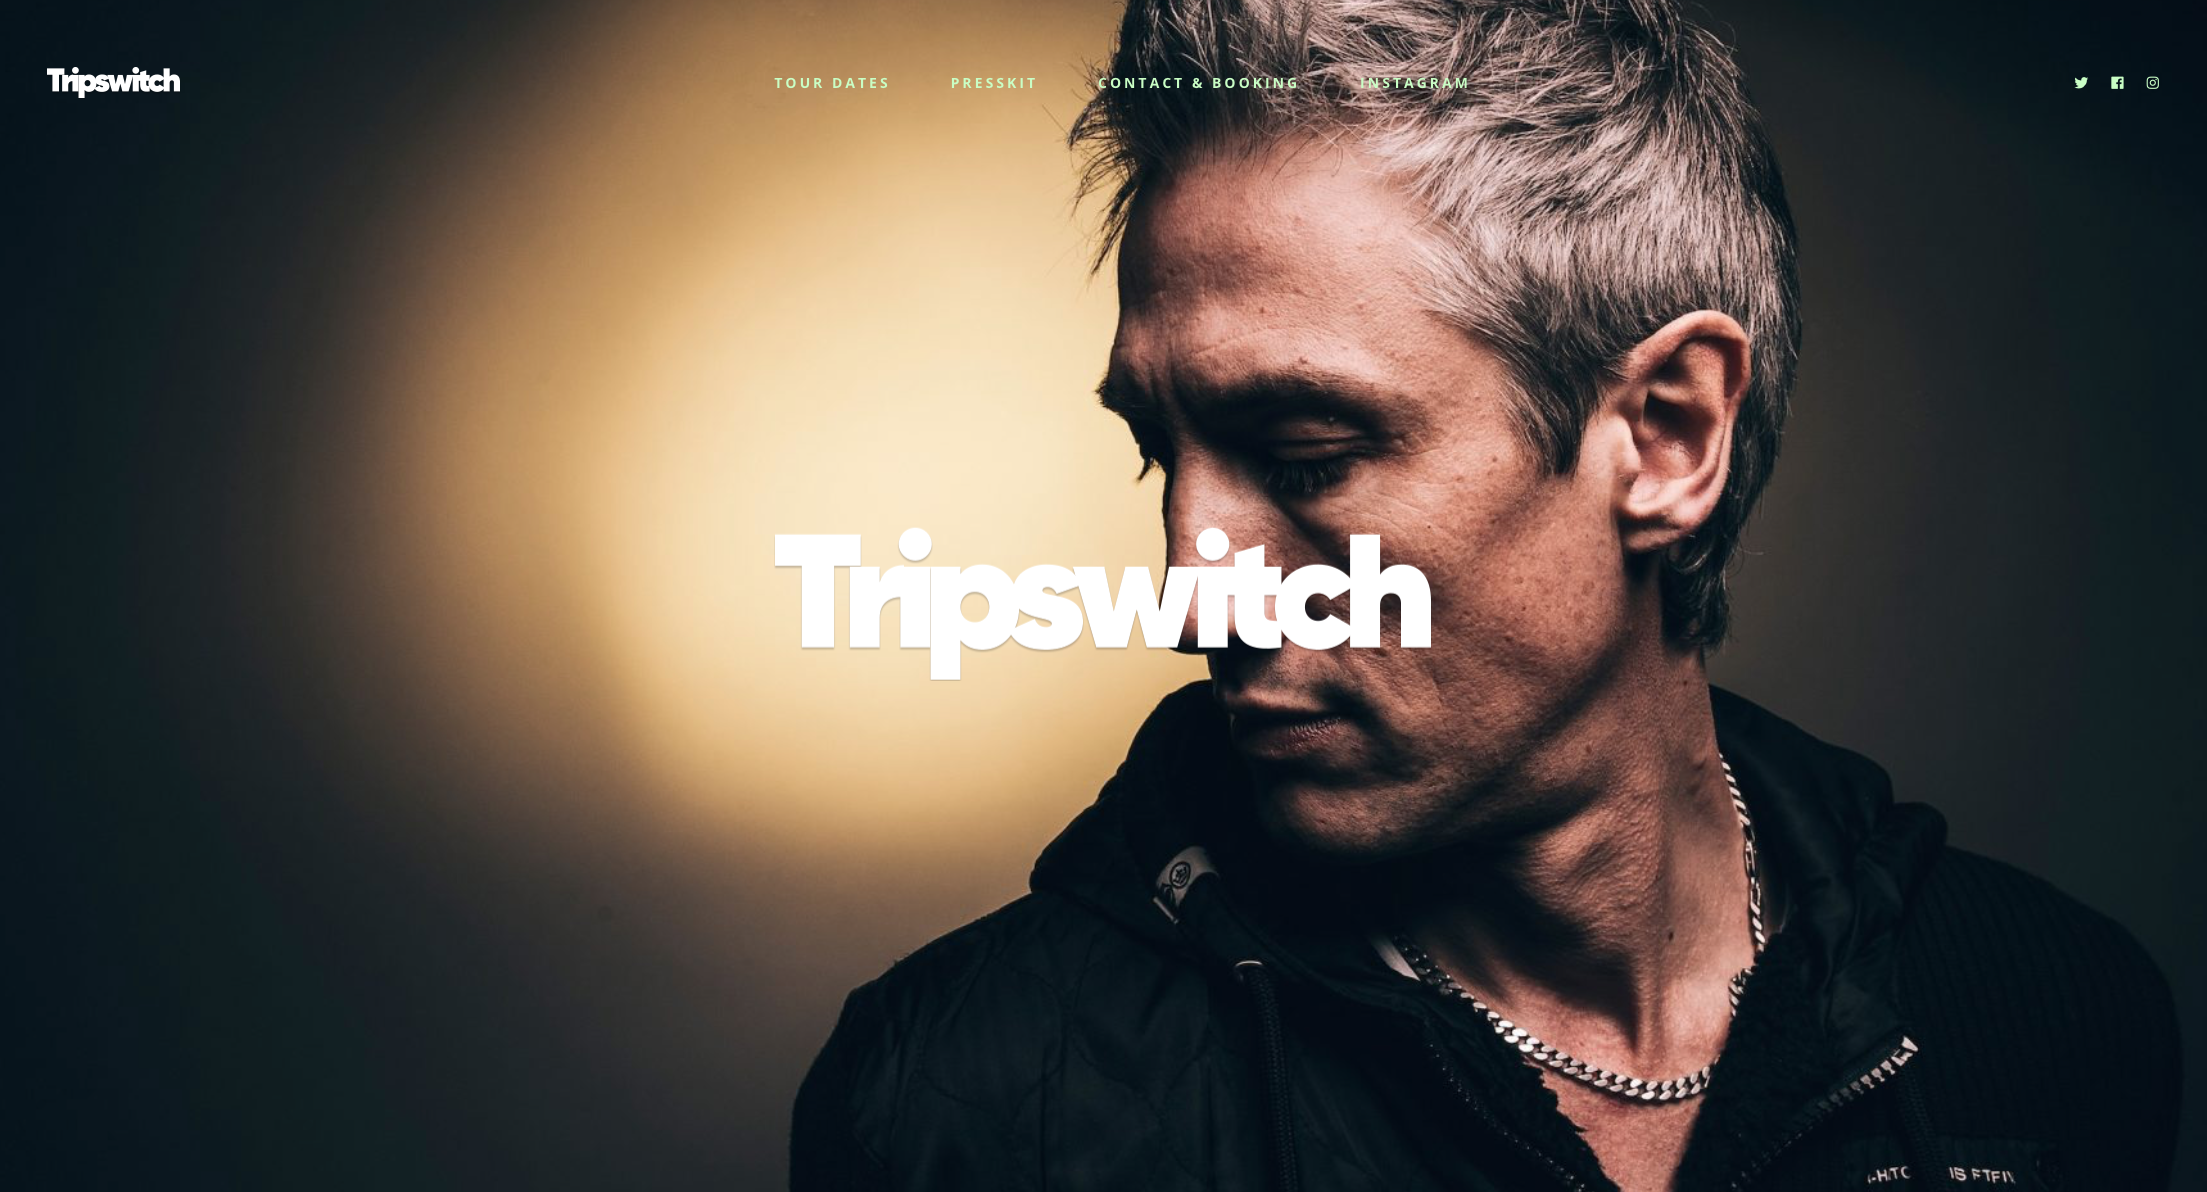 Tripswitch website